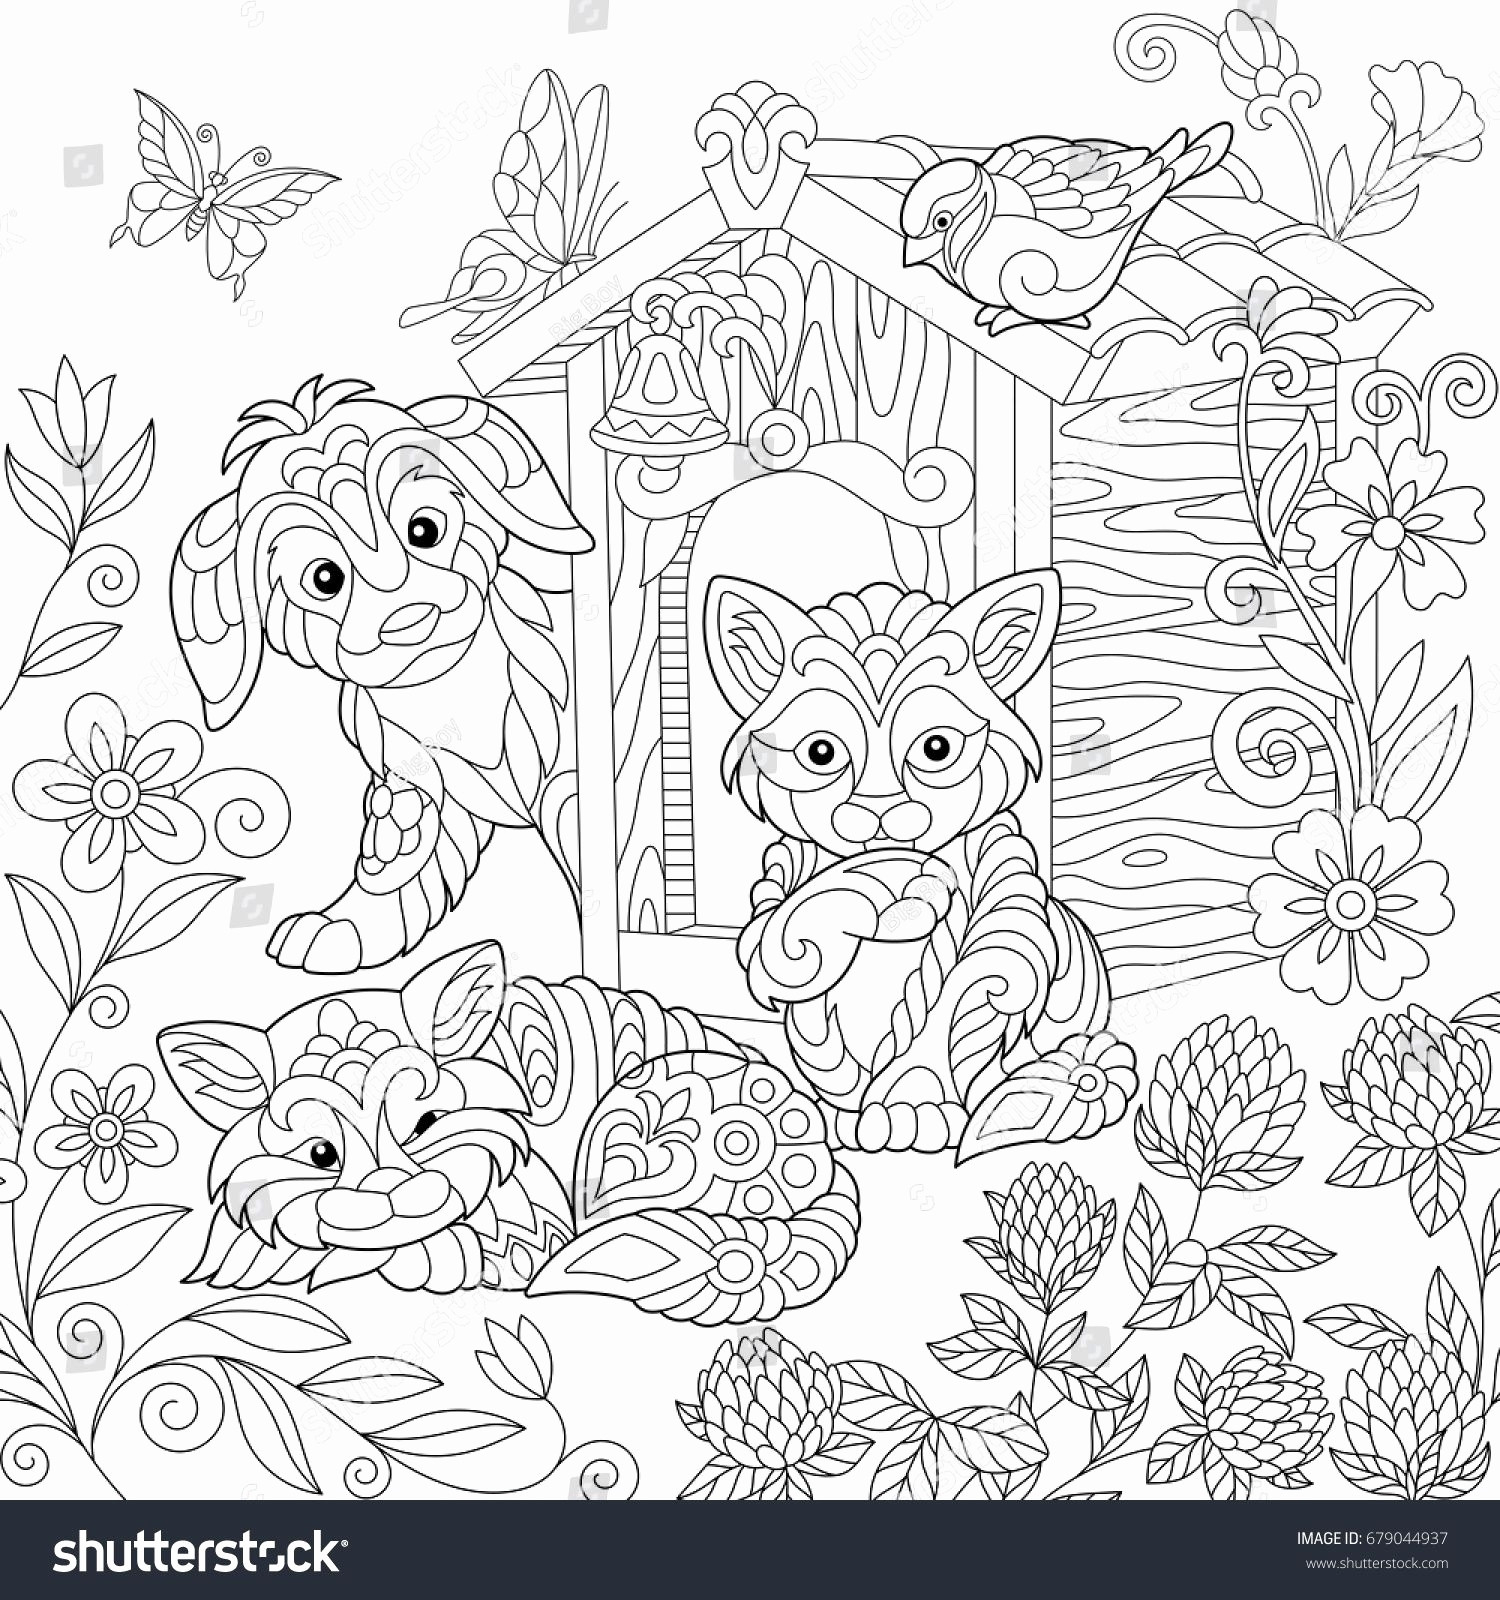 Halloween Cat Coloring Pages  Gallery 8i - To print for your project